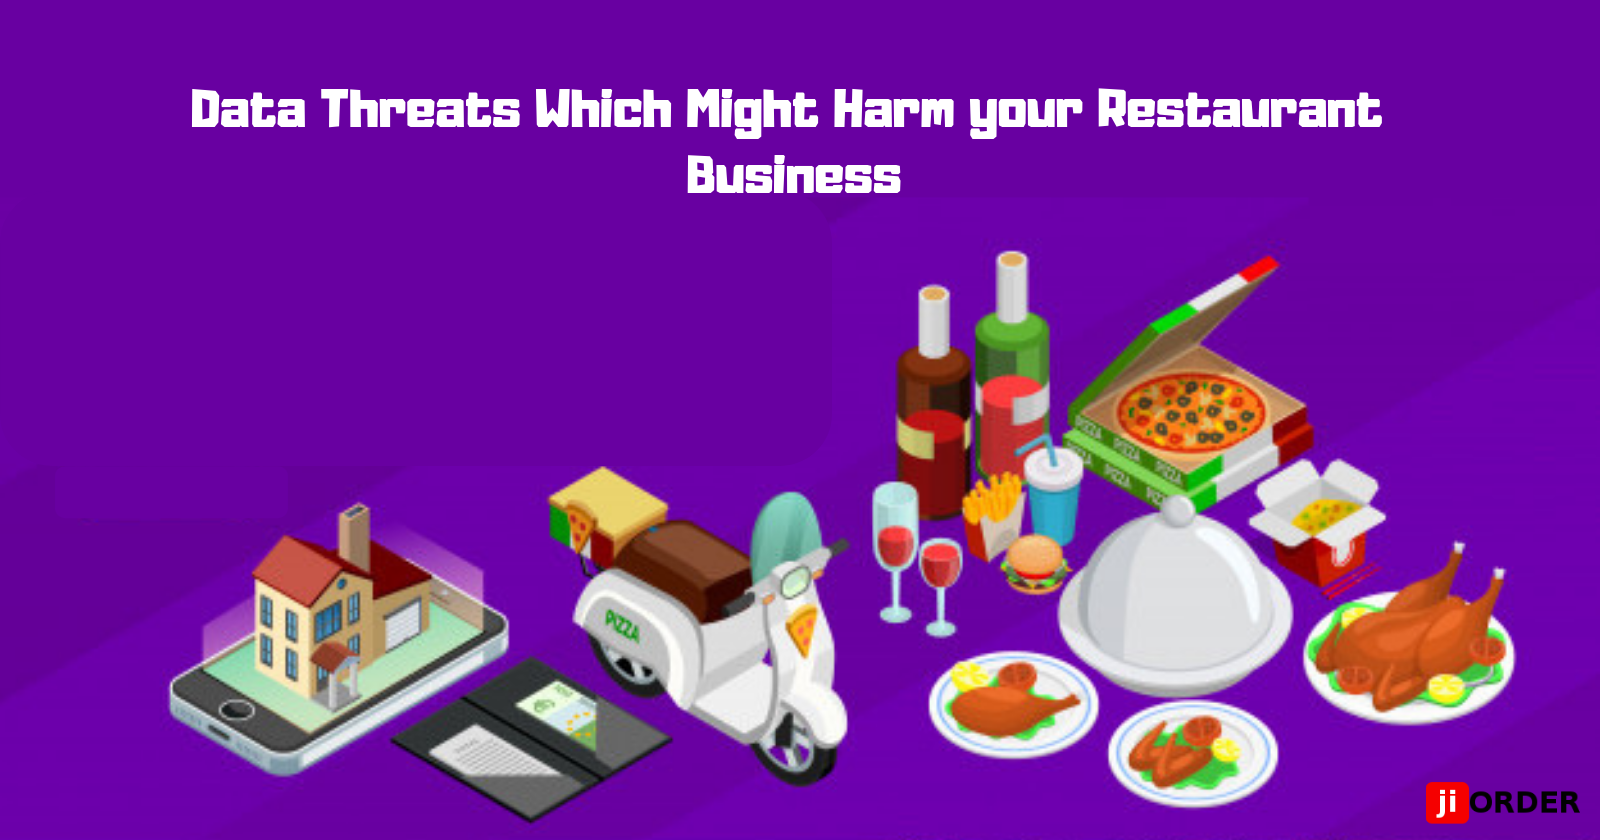 Common Data Threats in Restaurant Businesses